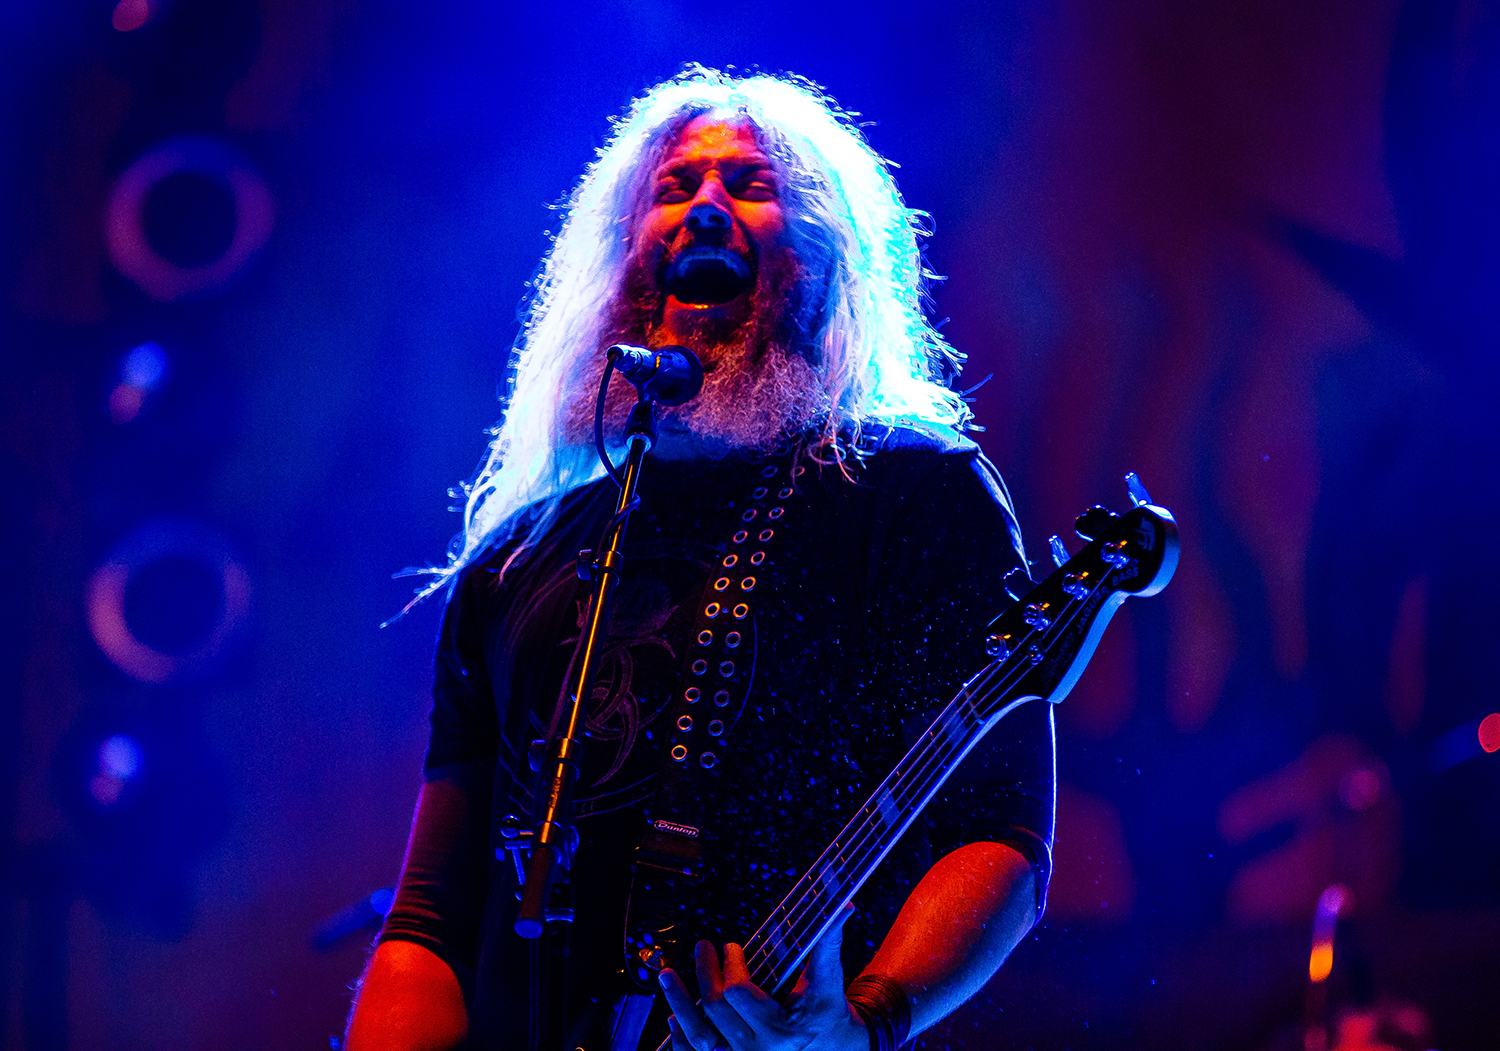 Troy Sanders on the bass guitar with Mastodon as the band performs on the Grandstand Stage during the Illinois State Fair, Saturday, Aug. 11, 2018, in Springfield, Ill. [Justin L. Fowler/The State Journal-Register]